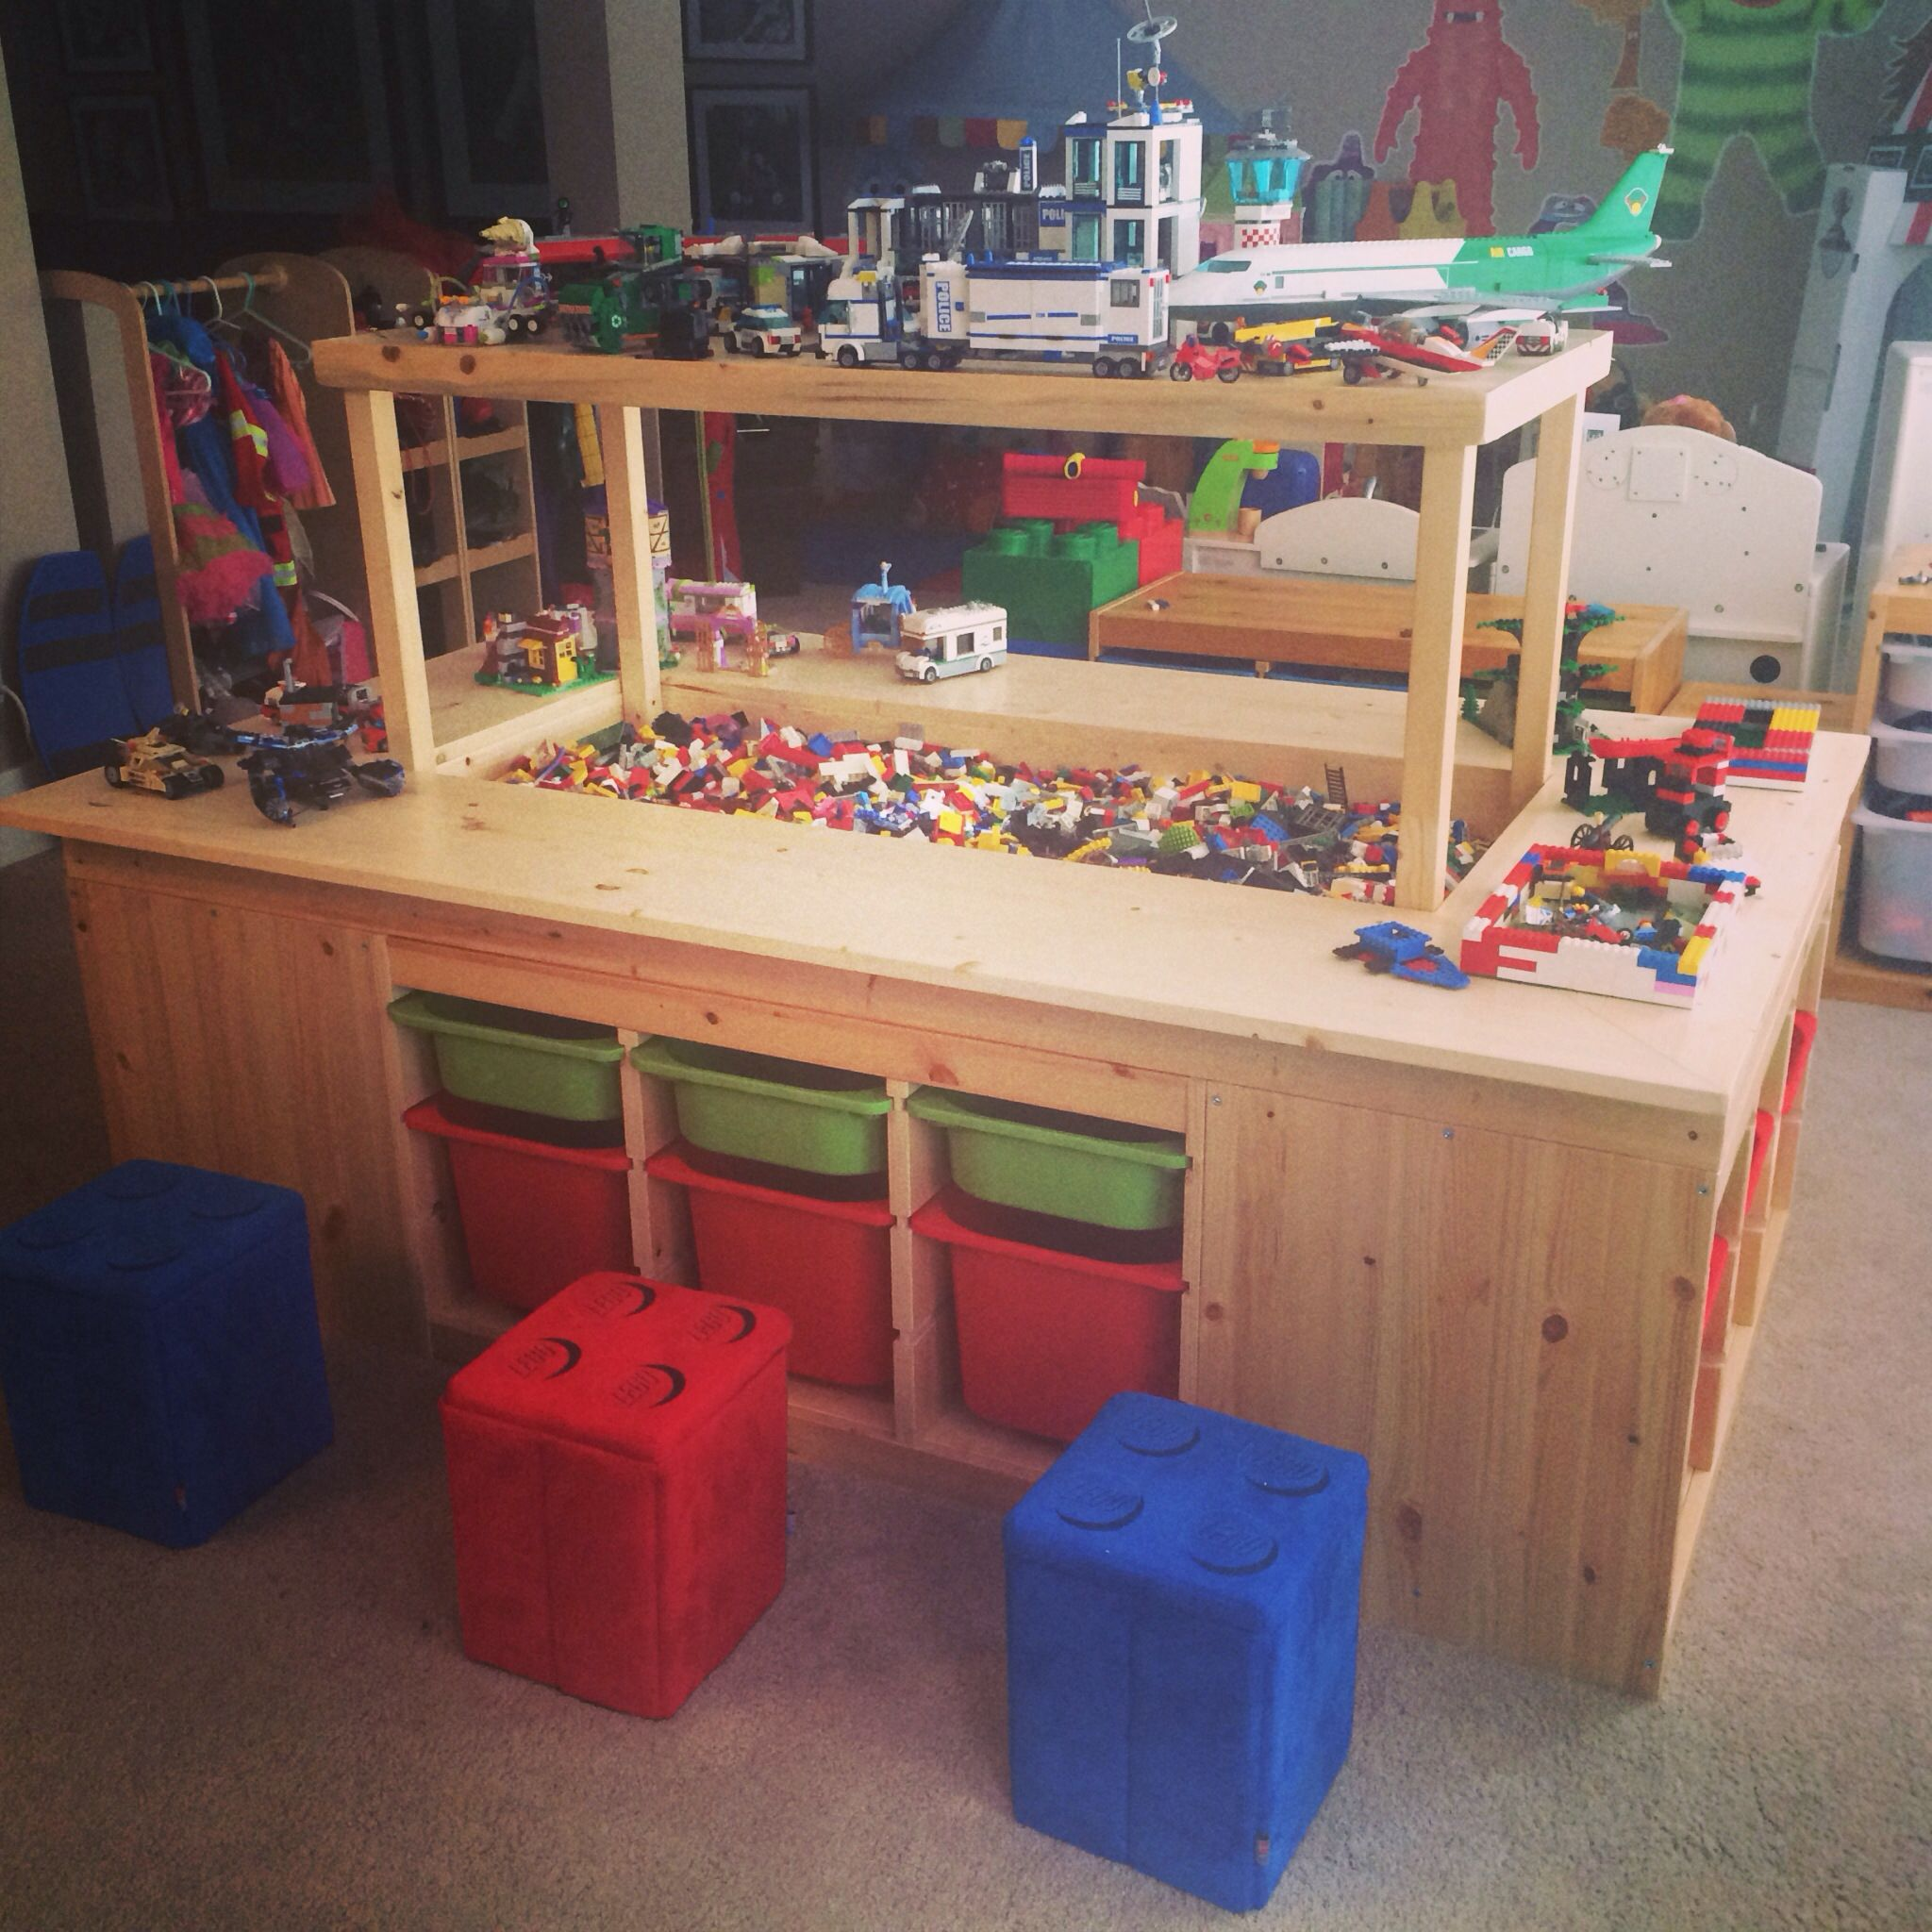 Most Awesome Lego Table Like The Finished In Process E Above